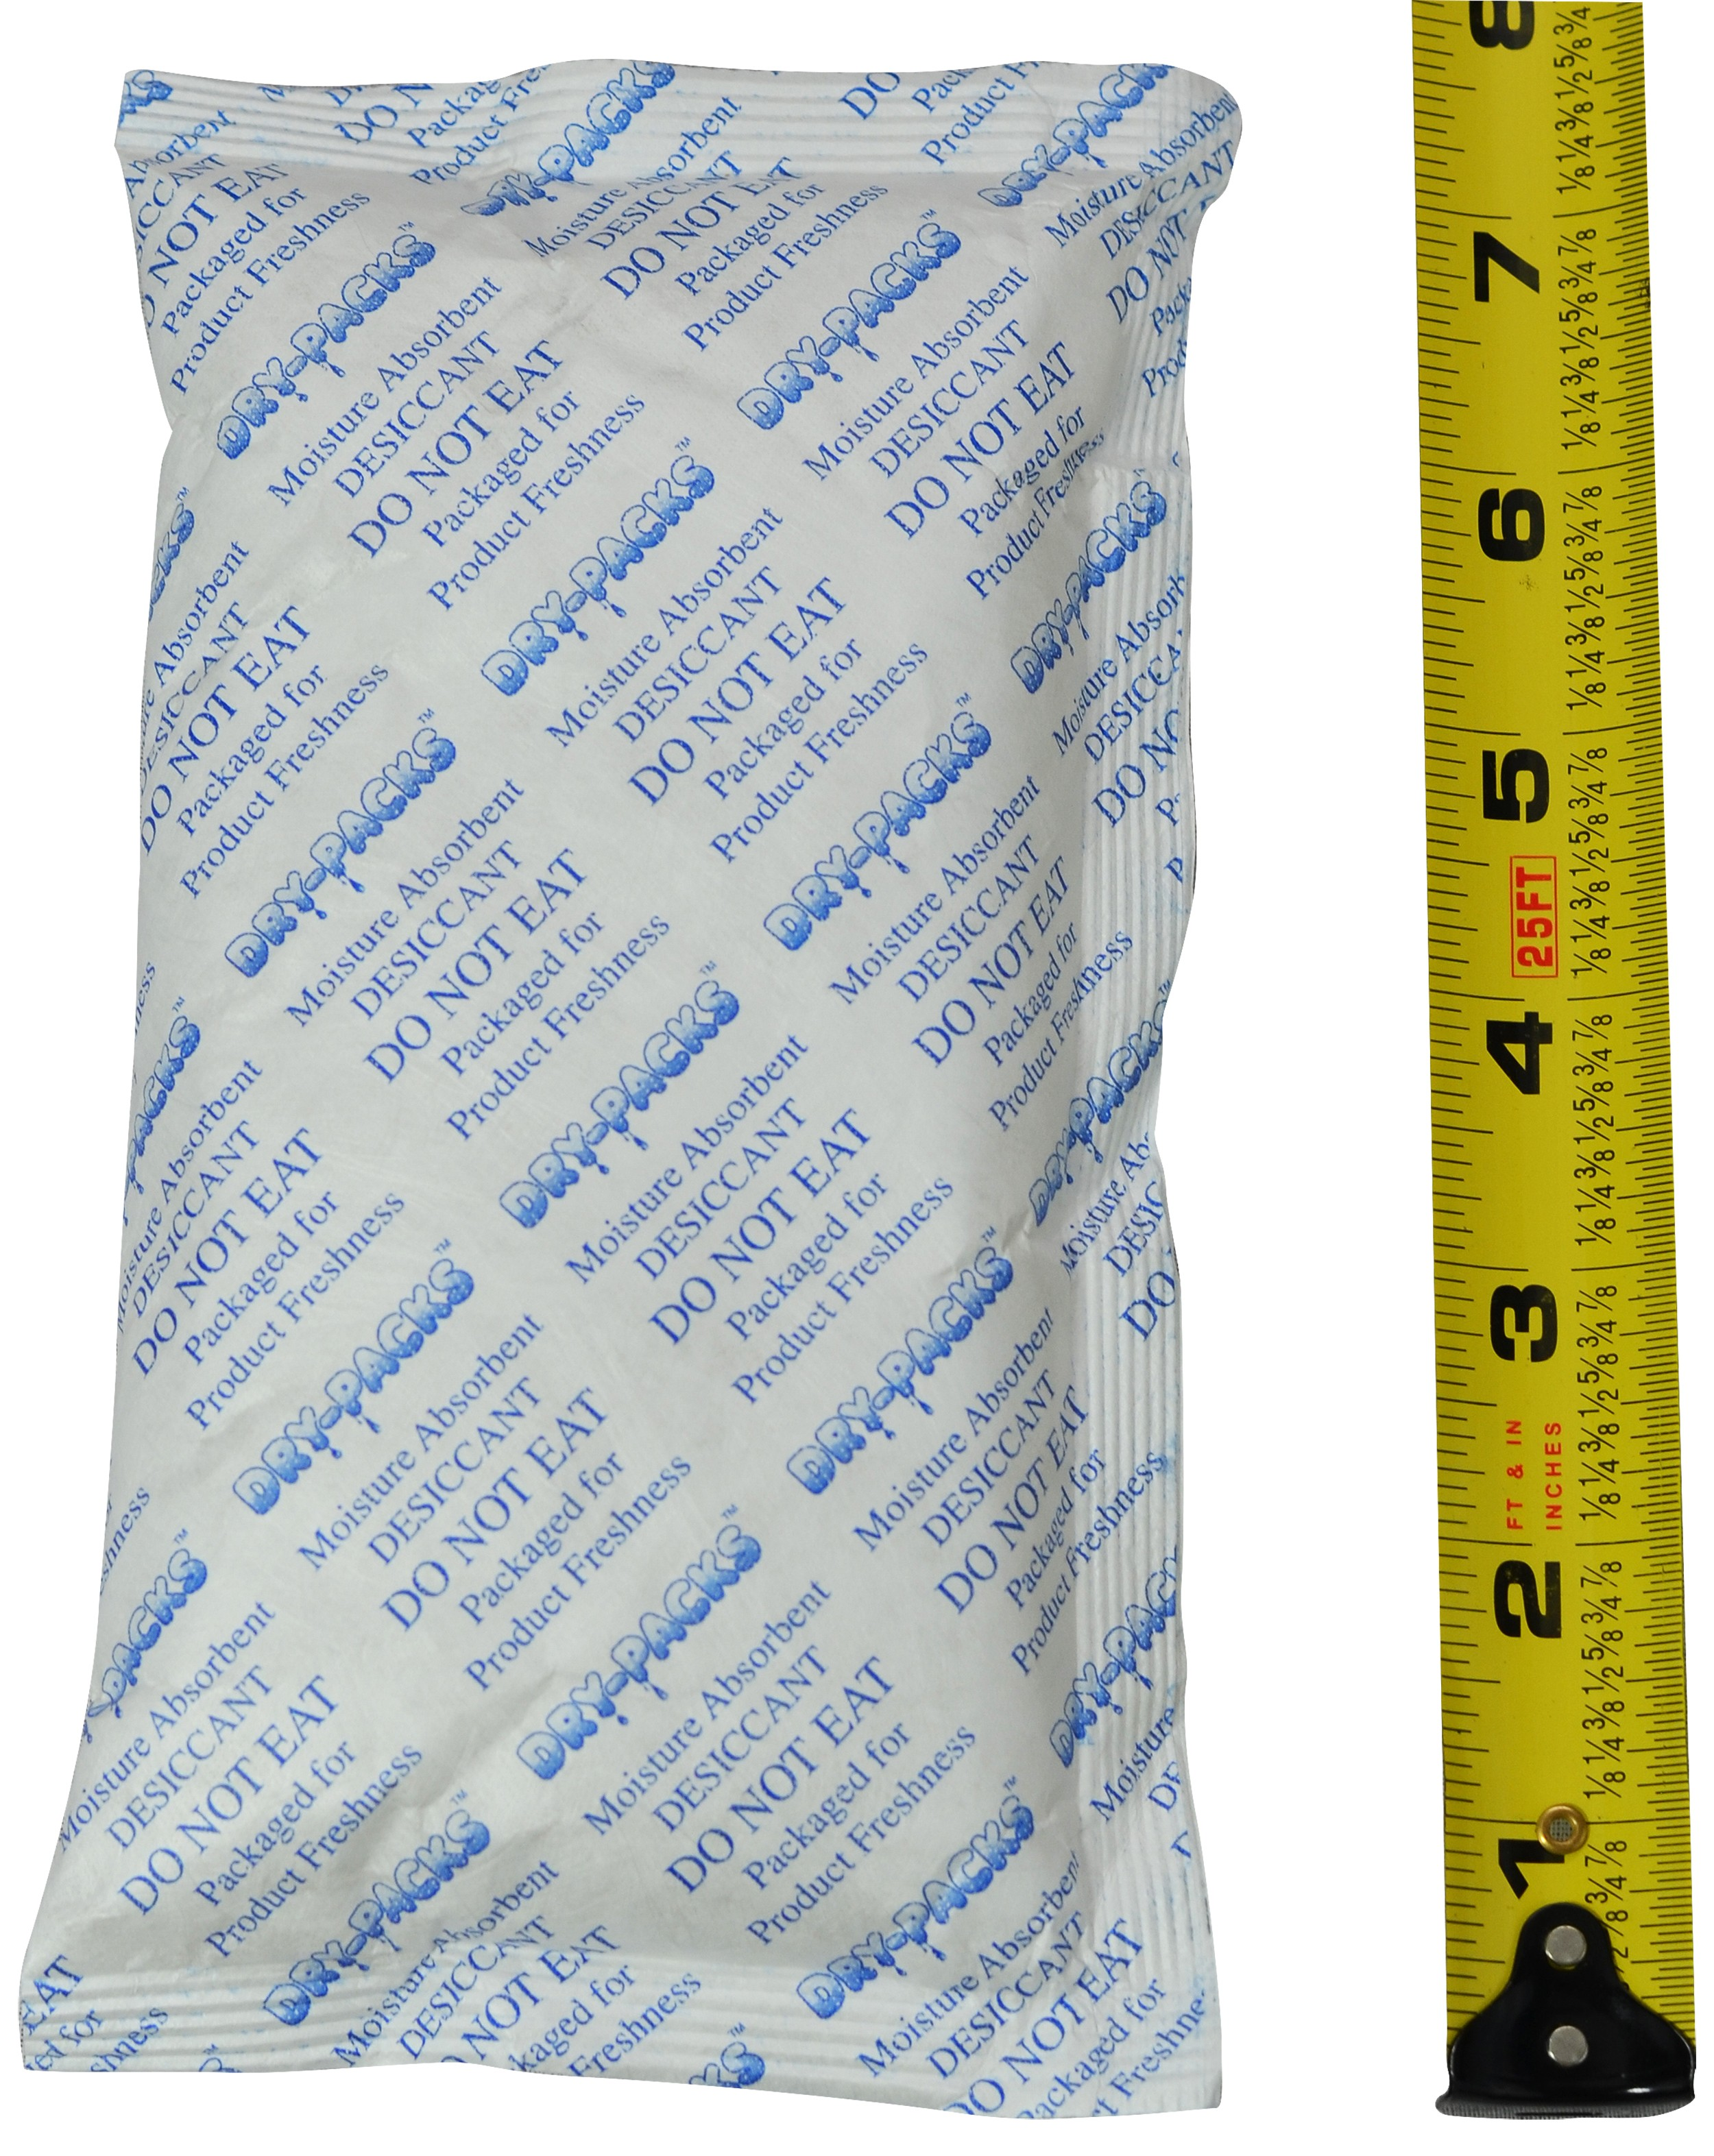 224 Gram Silica Gel Packet - Tyvek®